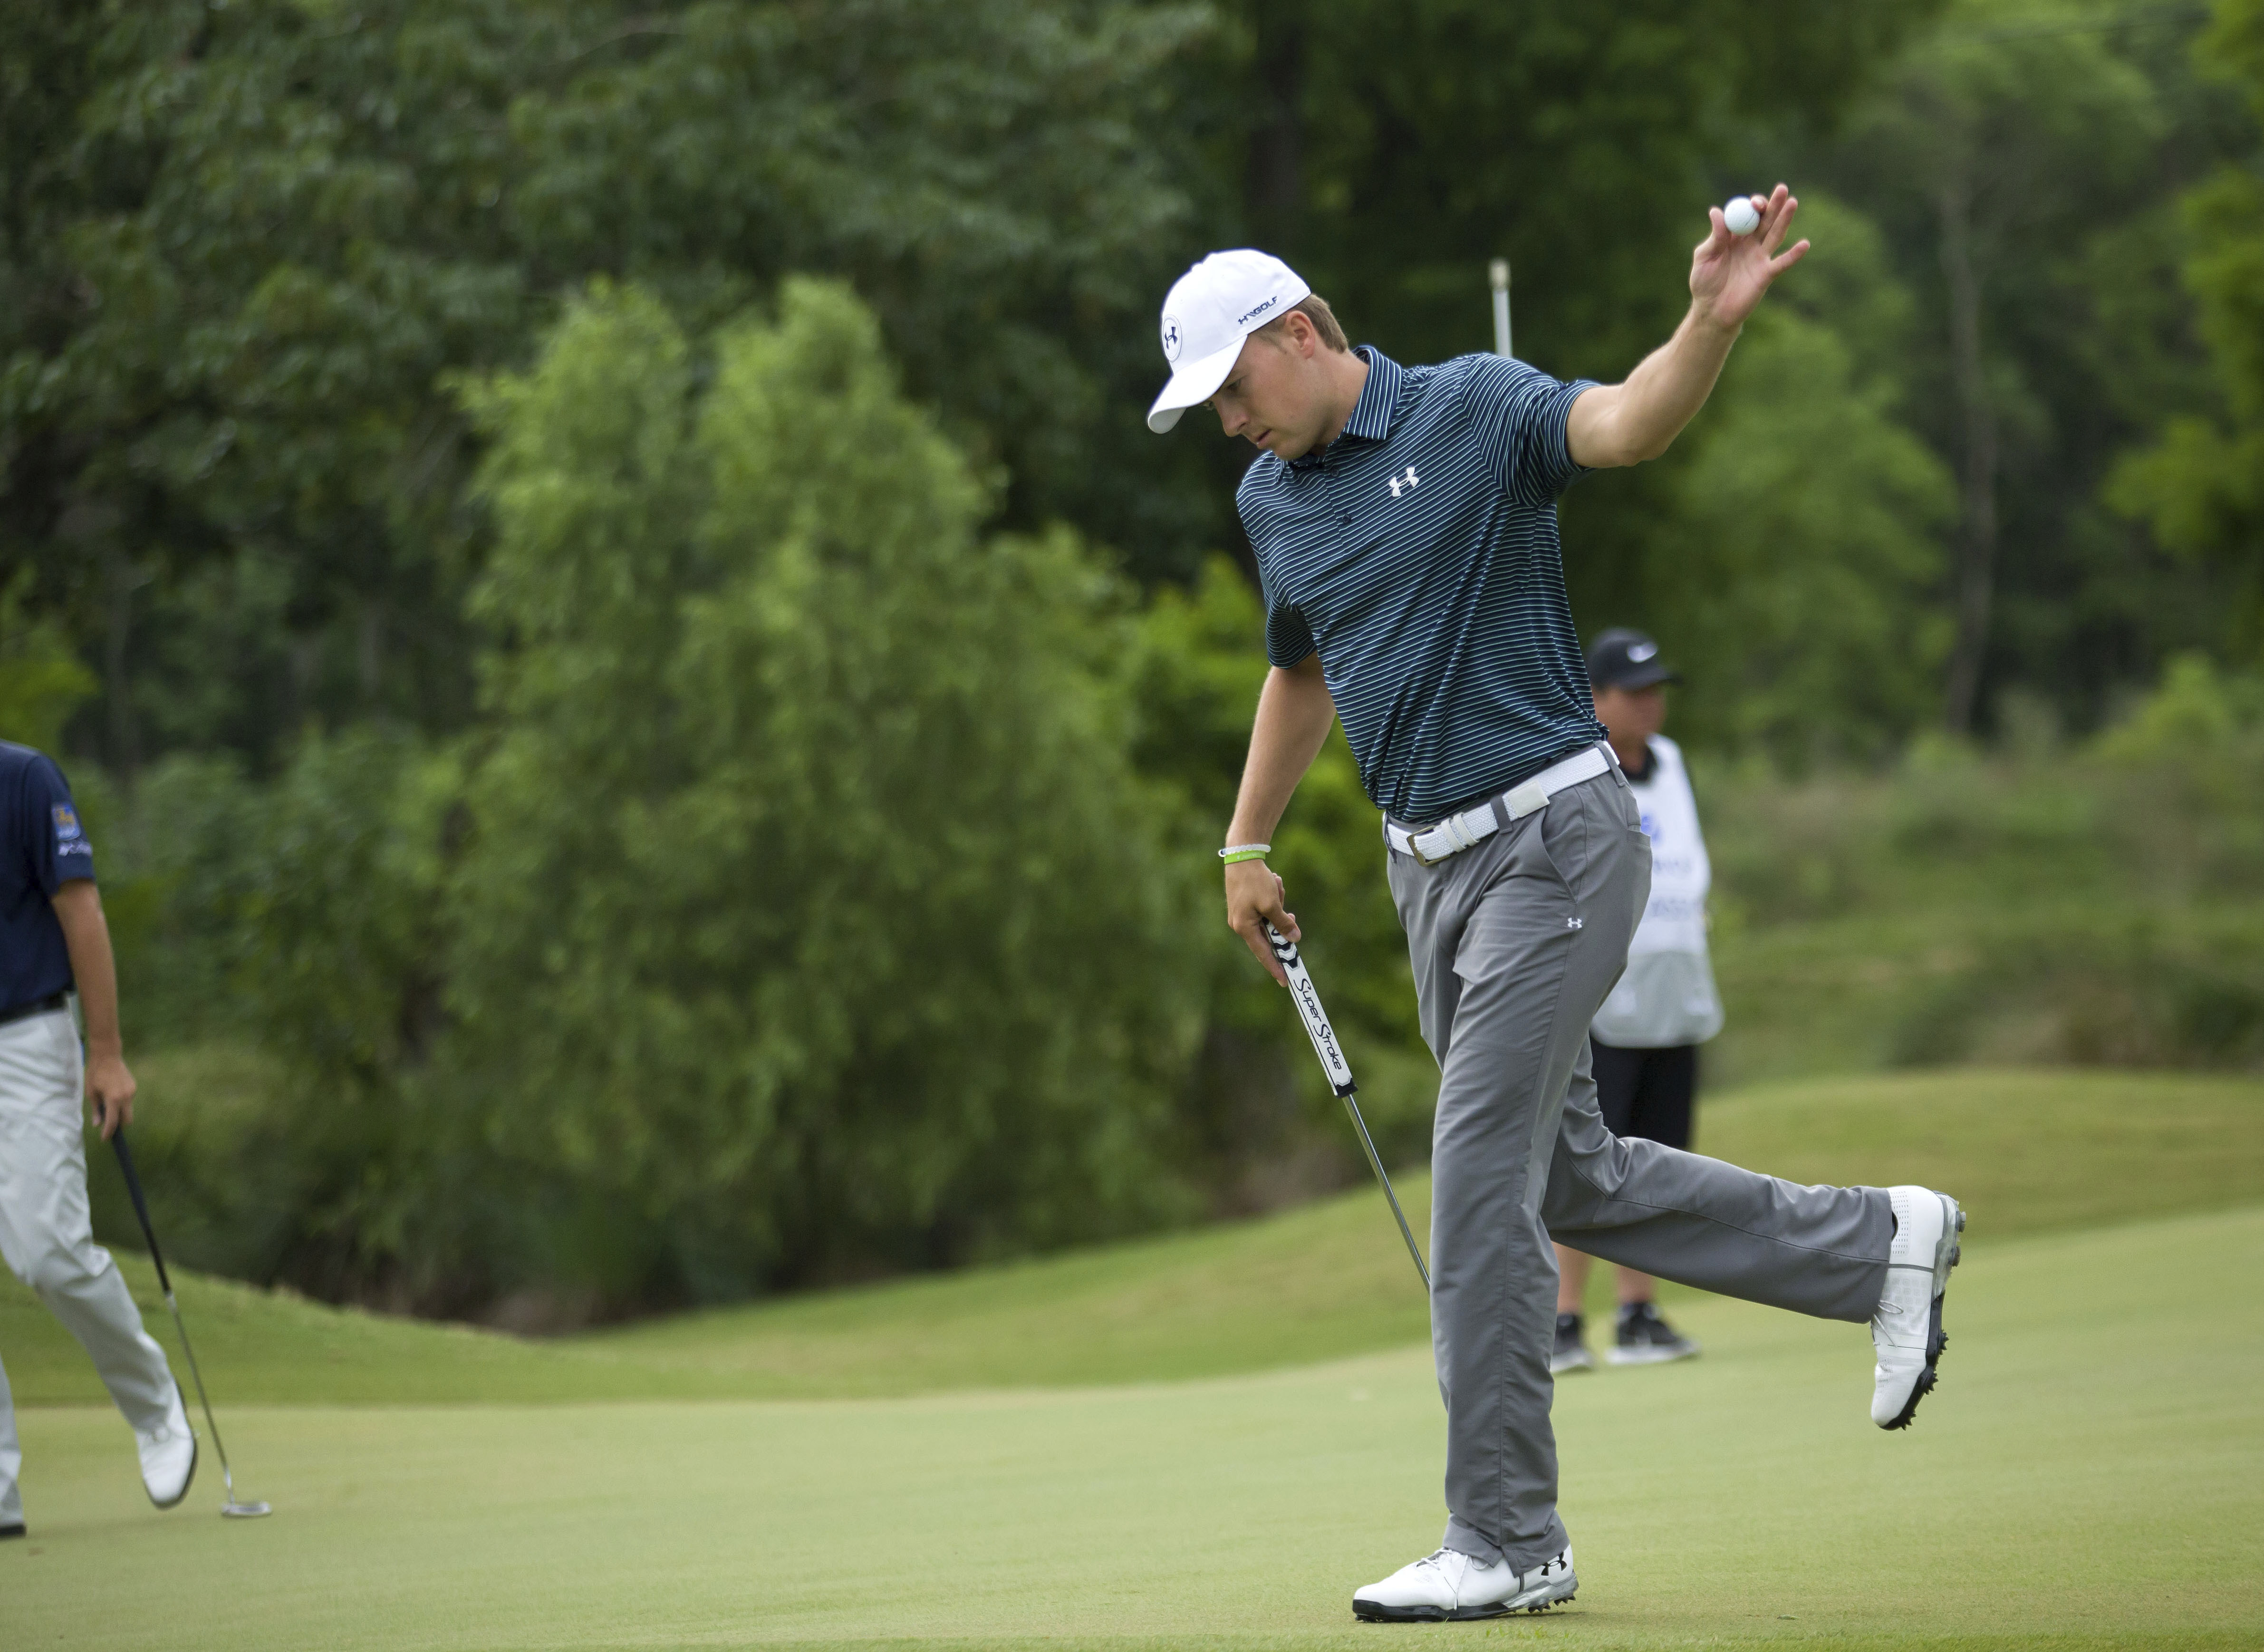 Jordan Spieth shows his ball after sinking a putt on the second hole during the final round of the PGA Zurich Classic golf tournament's new two-man team format at TPC Louisiana in Avondale, La., Sunday, April 30, 2017. (AP Photo/Scott Threlkeld)